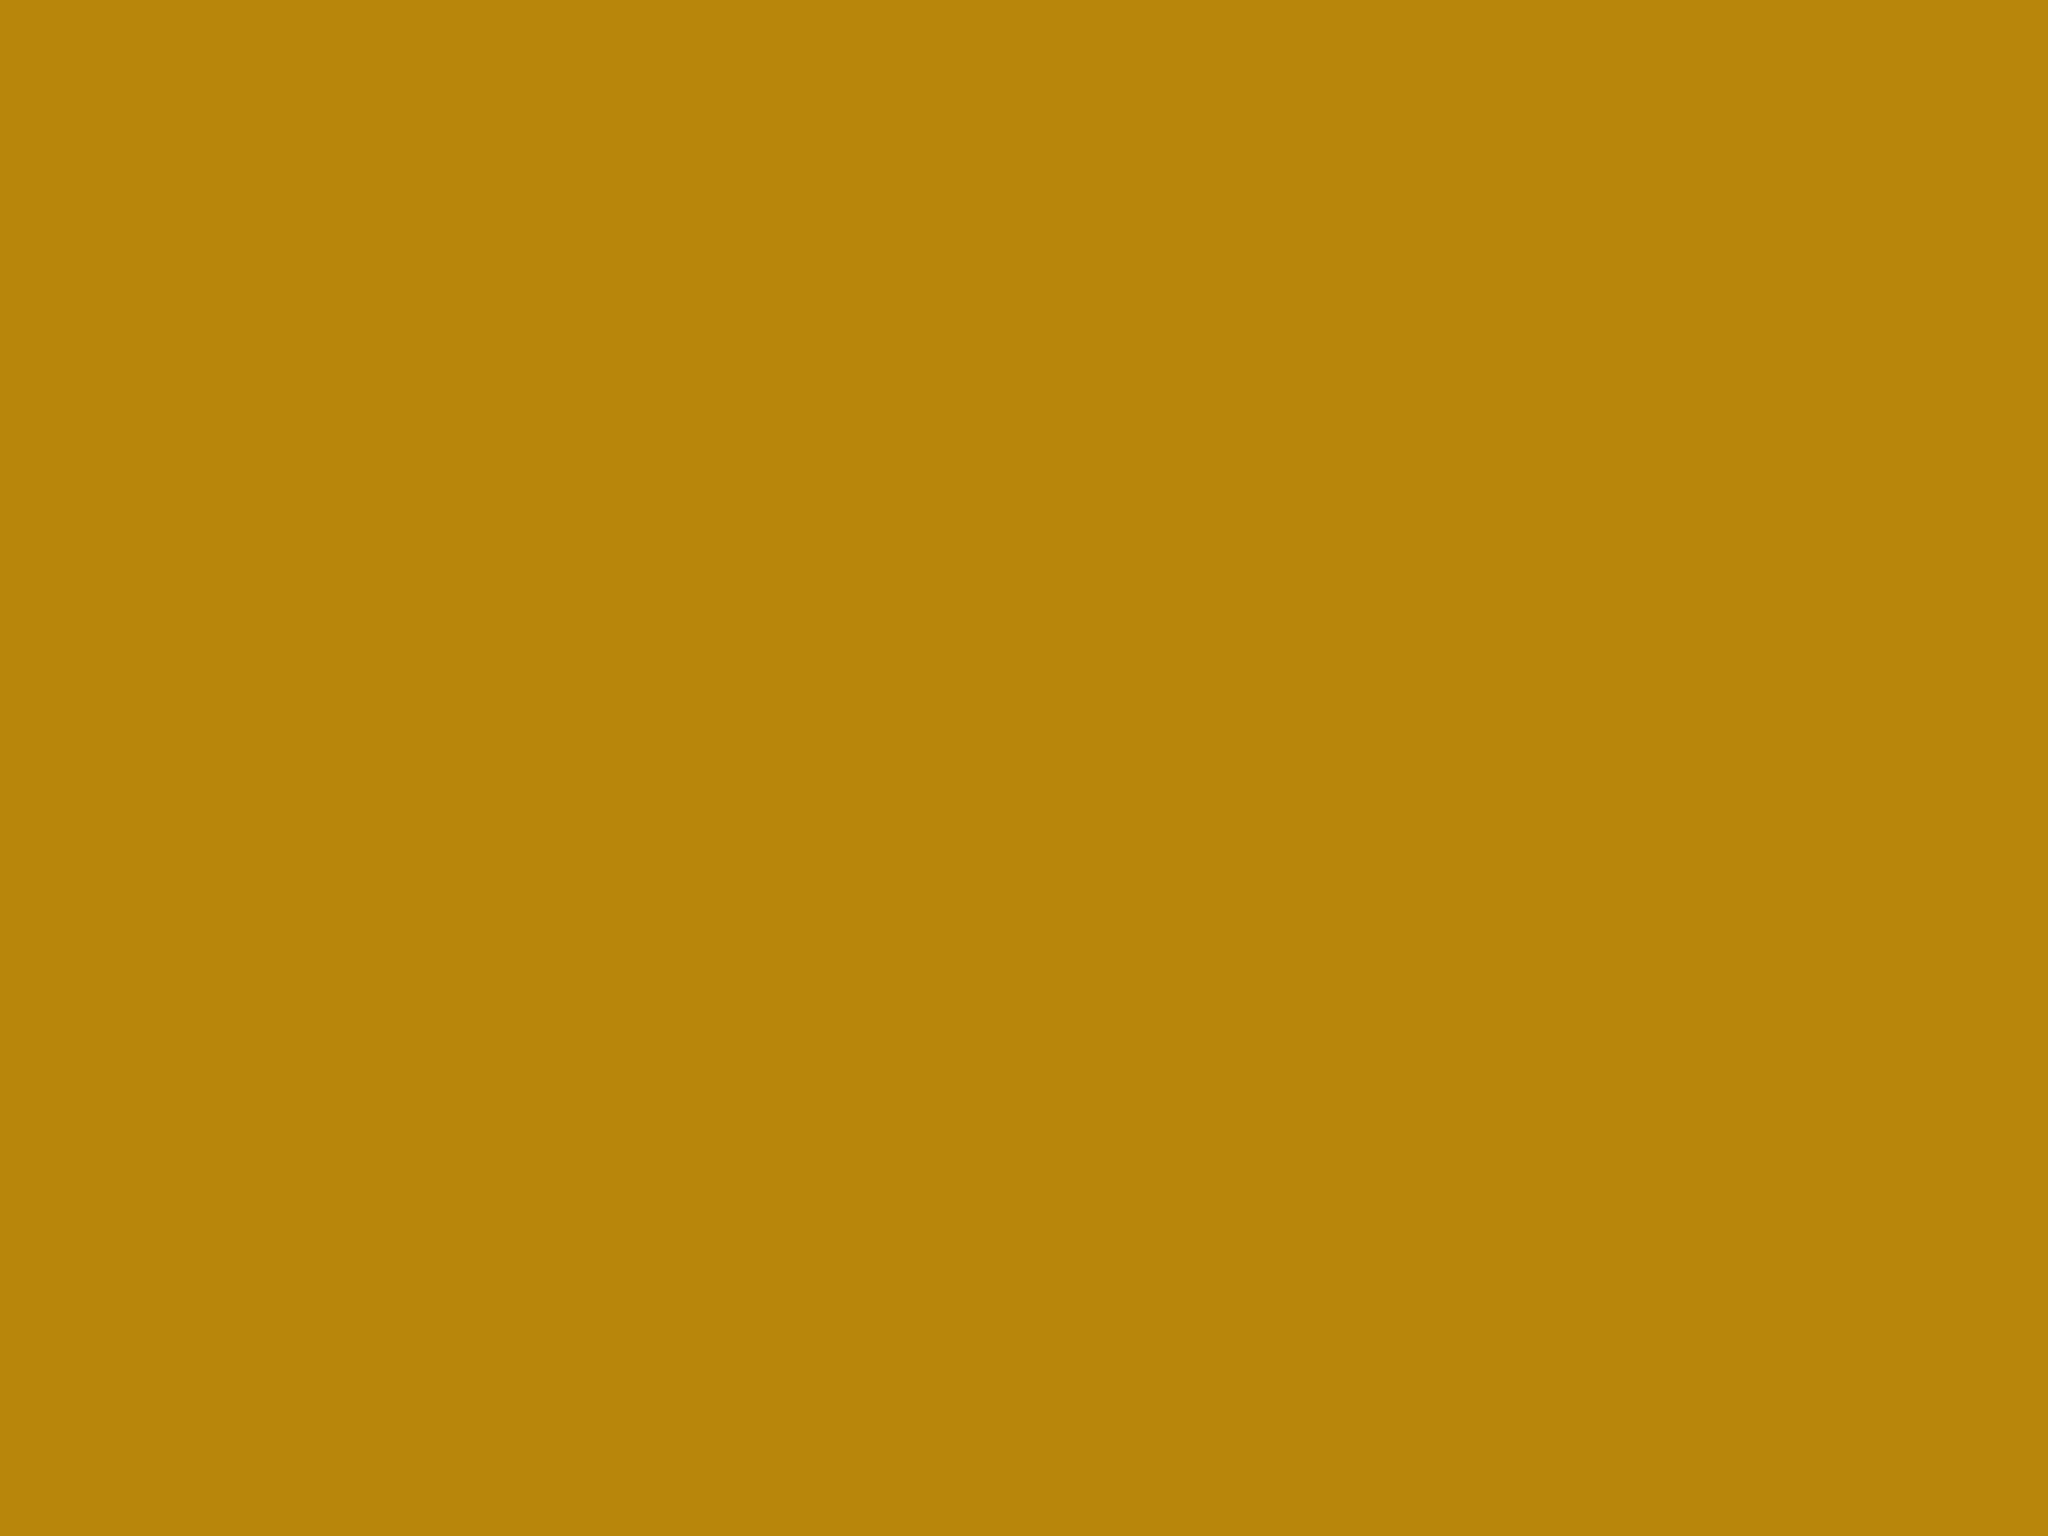 2048x1536 Dark Goldenrod Solid Color Background